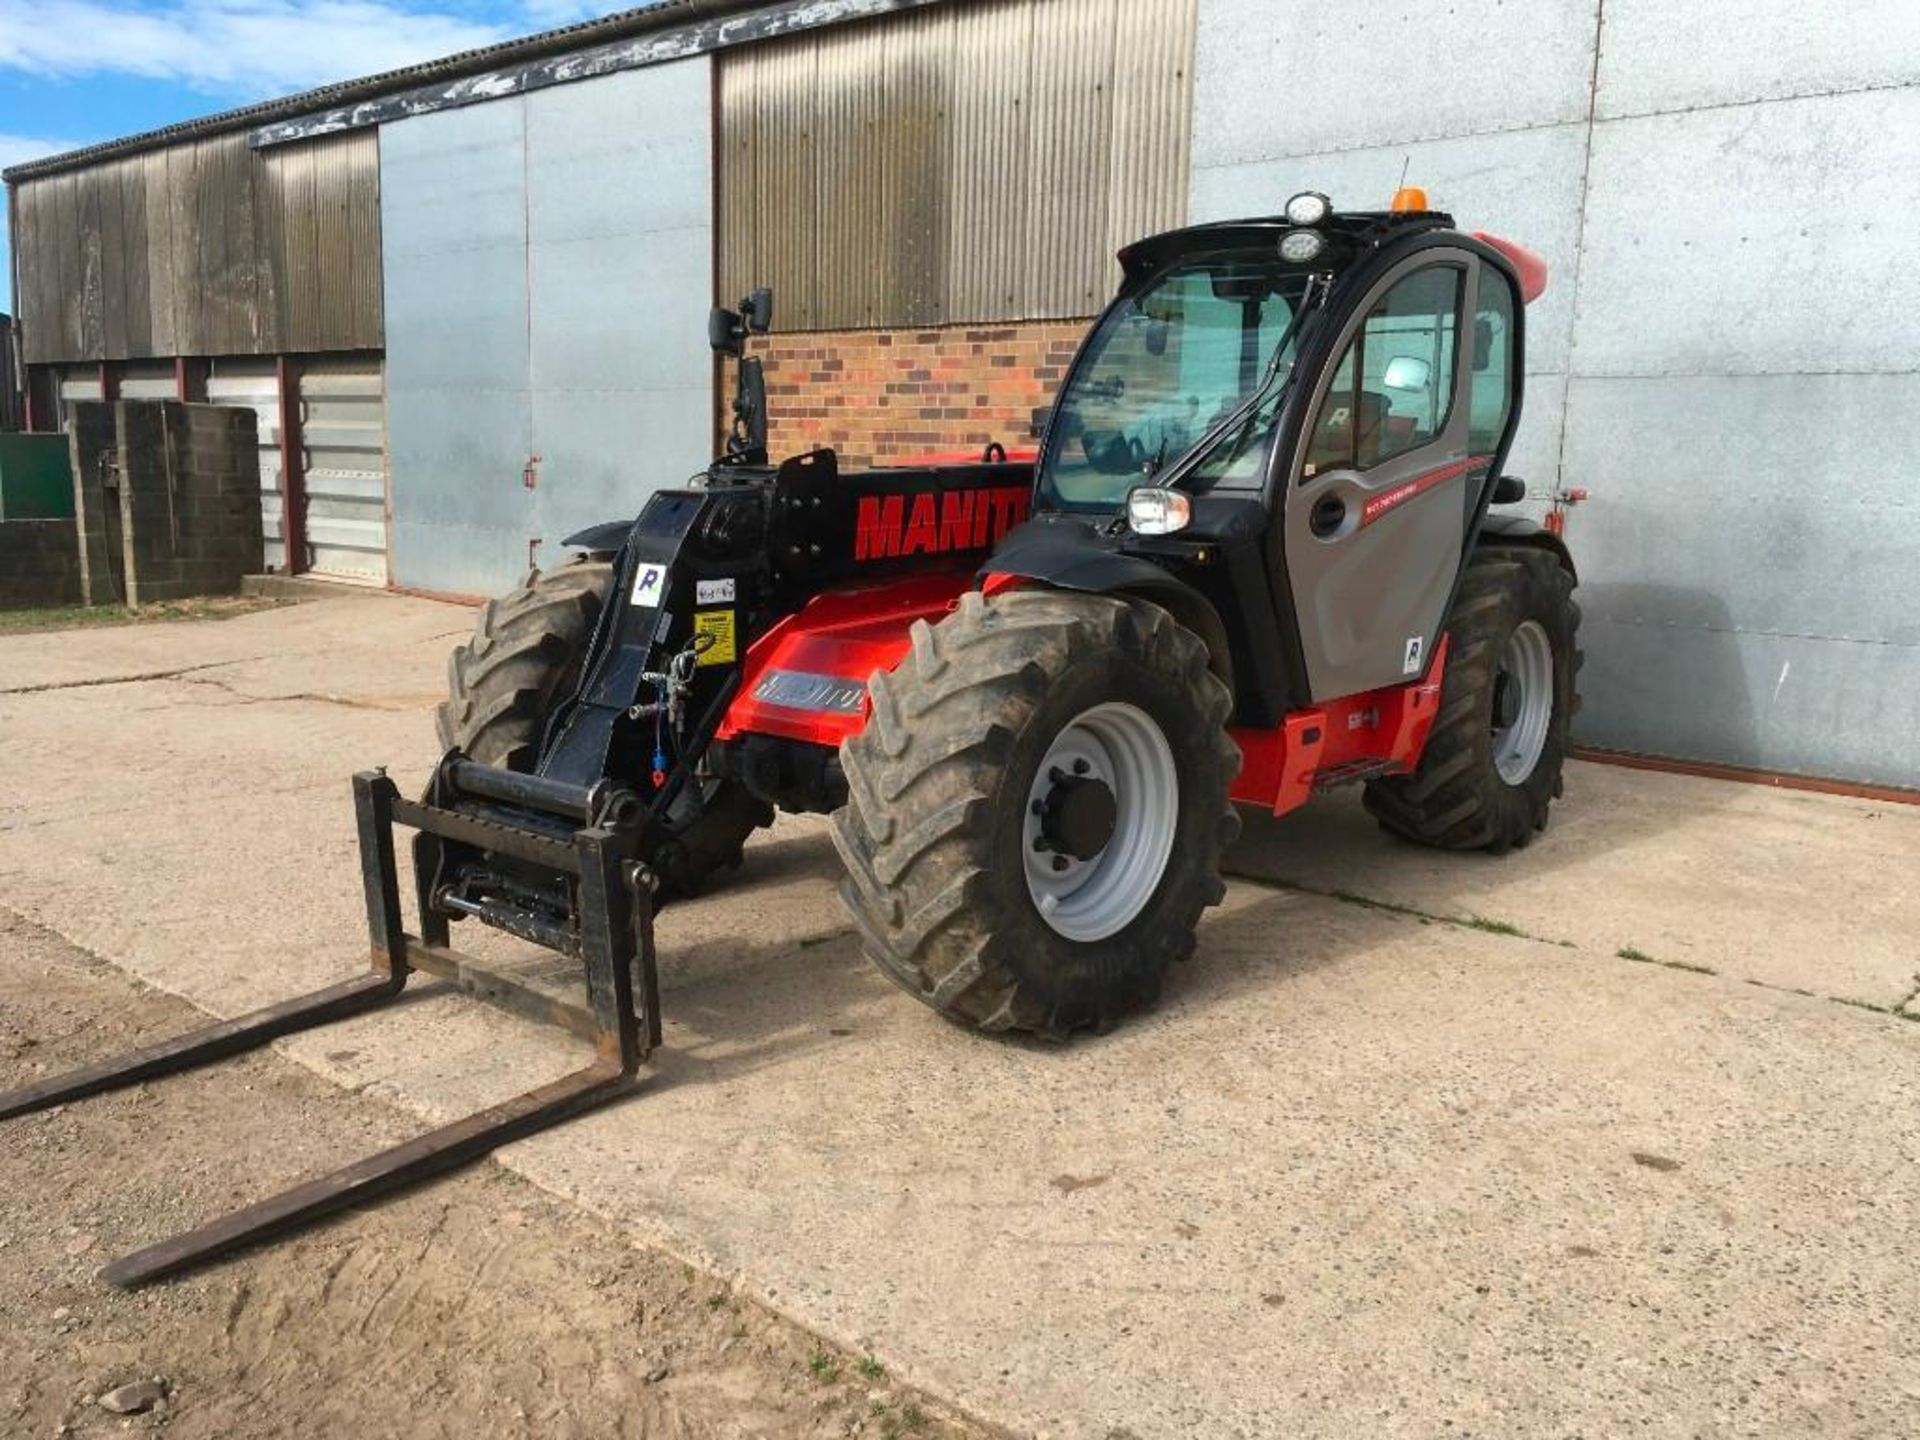 2017 Manitou MLT 737-130 PS+ Elite telehandler with rear pick up hitch, power shift, air seat, elect - Image 9 of 22